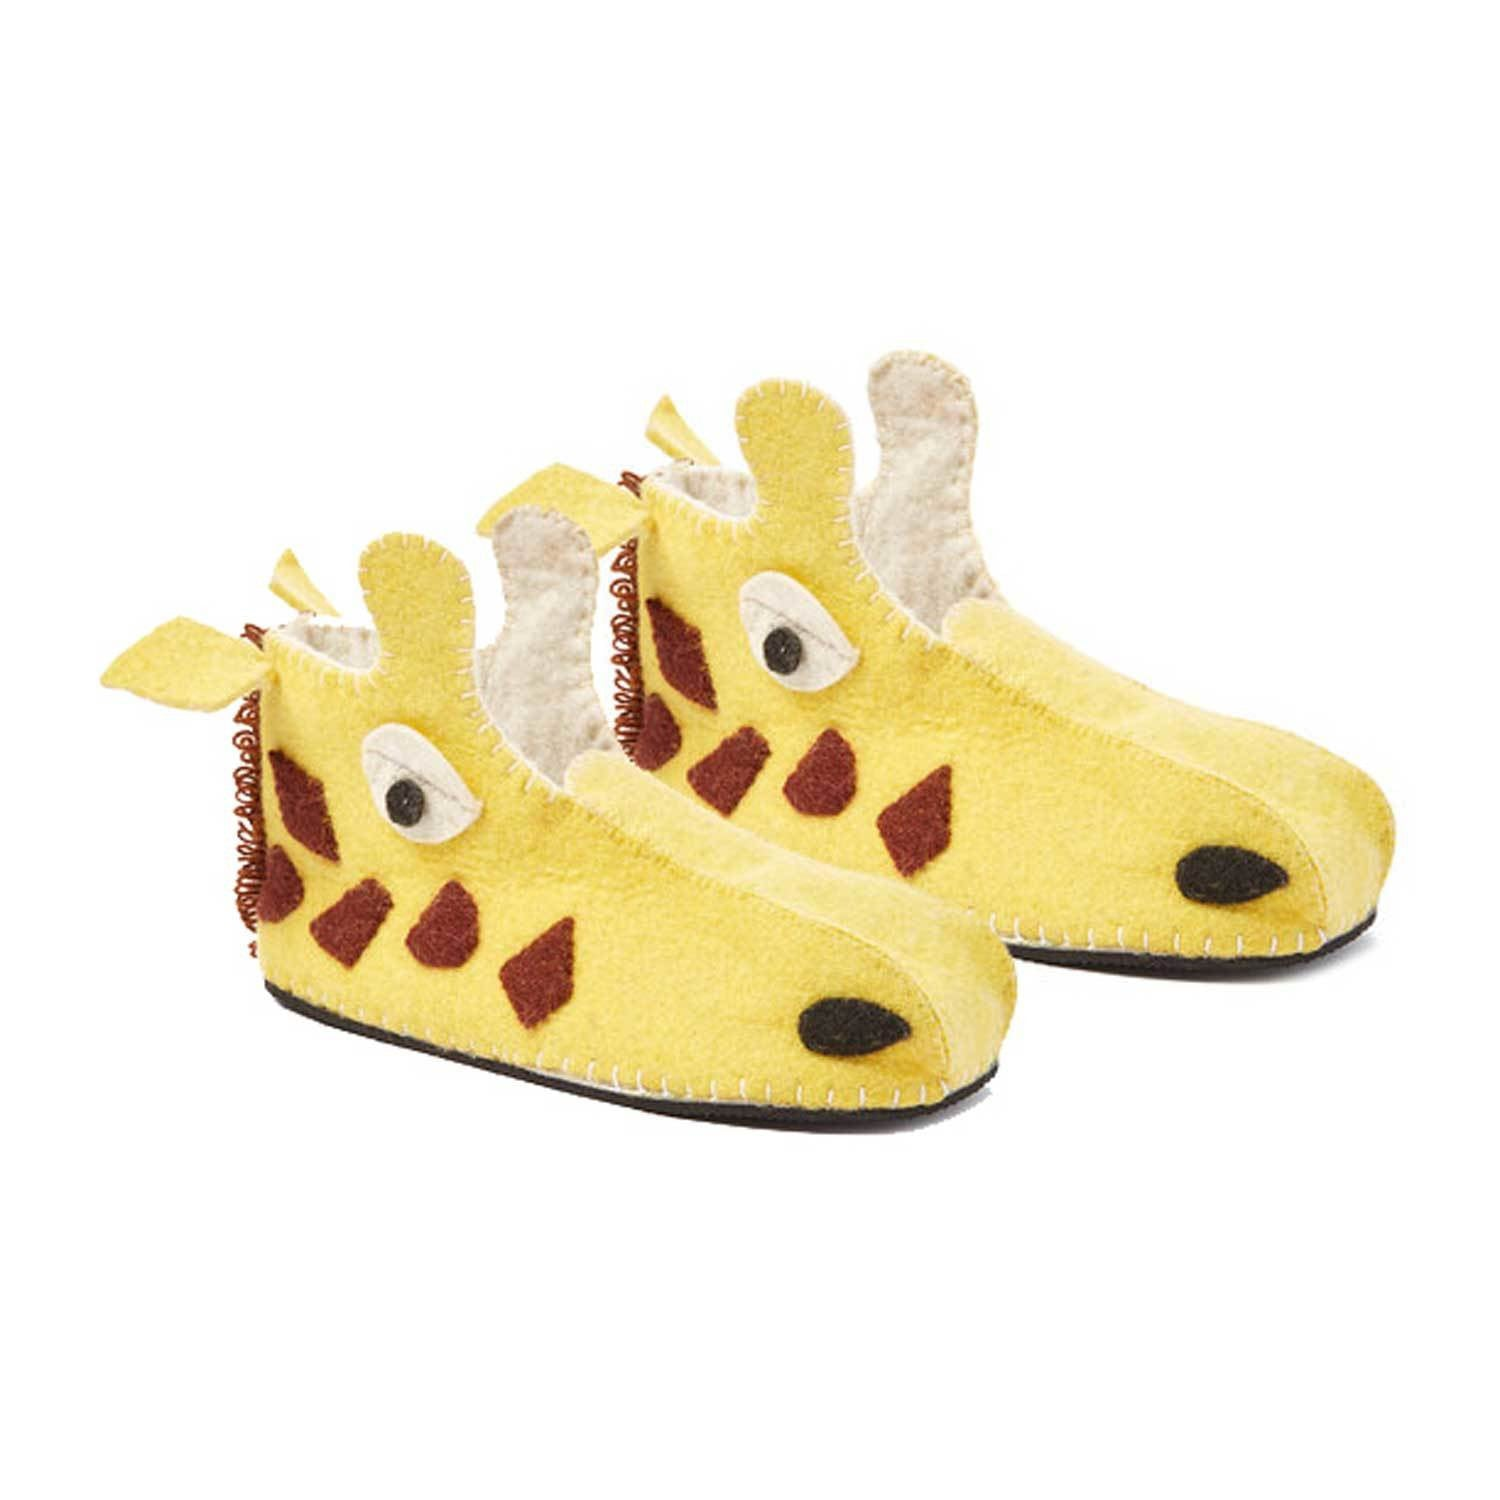 Giraffe Slippers Adult Large